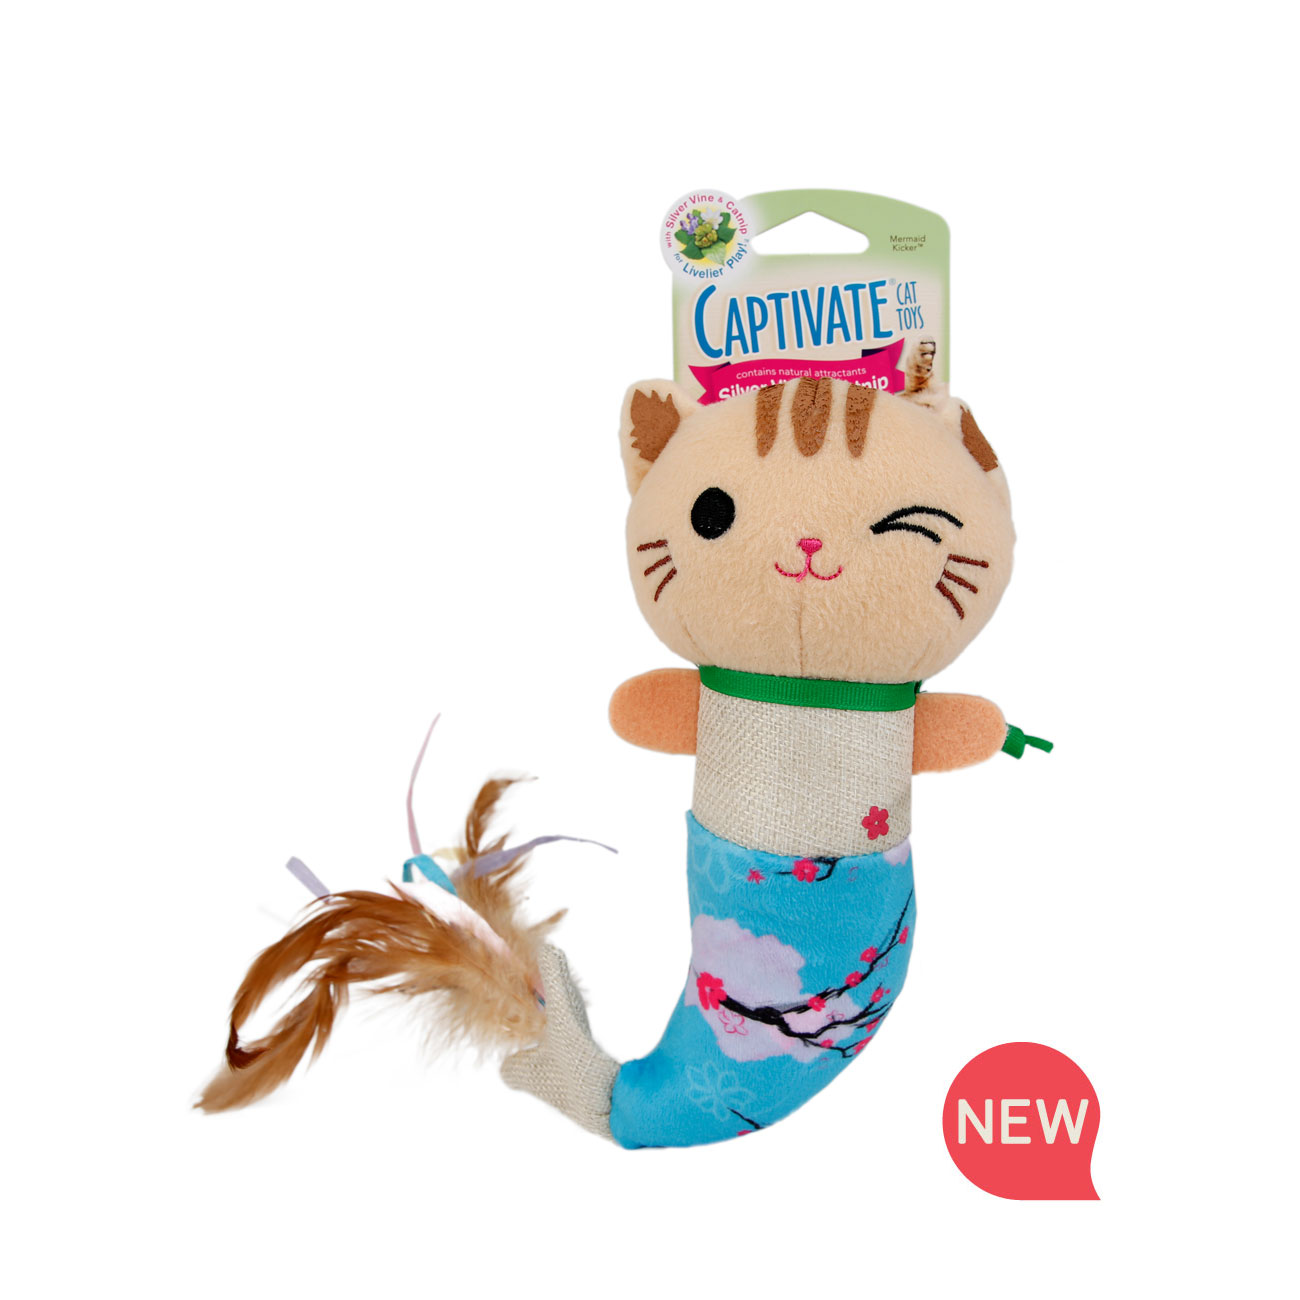 New! Hartz Captivate mermaid kicker cat toy. Contains silver vine and catnip. Front of package. Hartz SKU#3270011250.